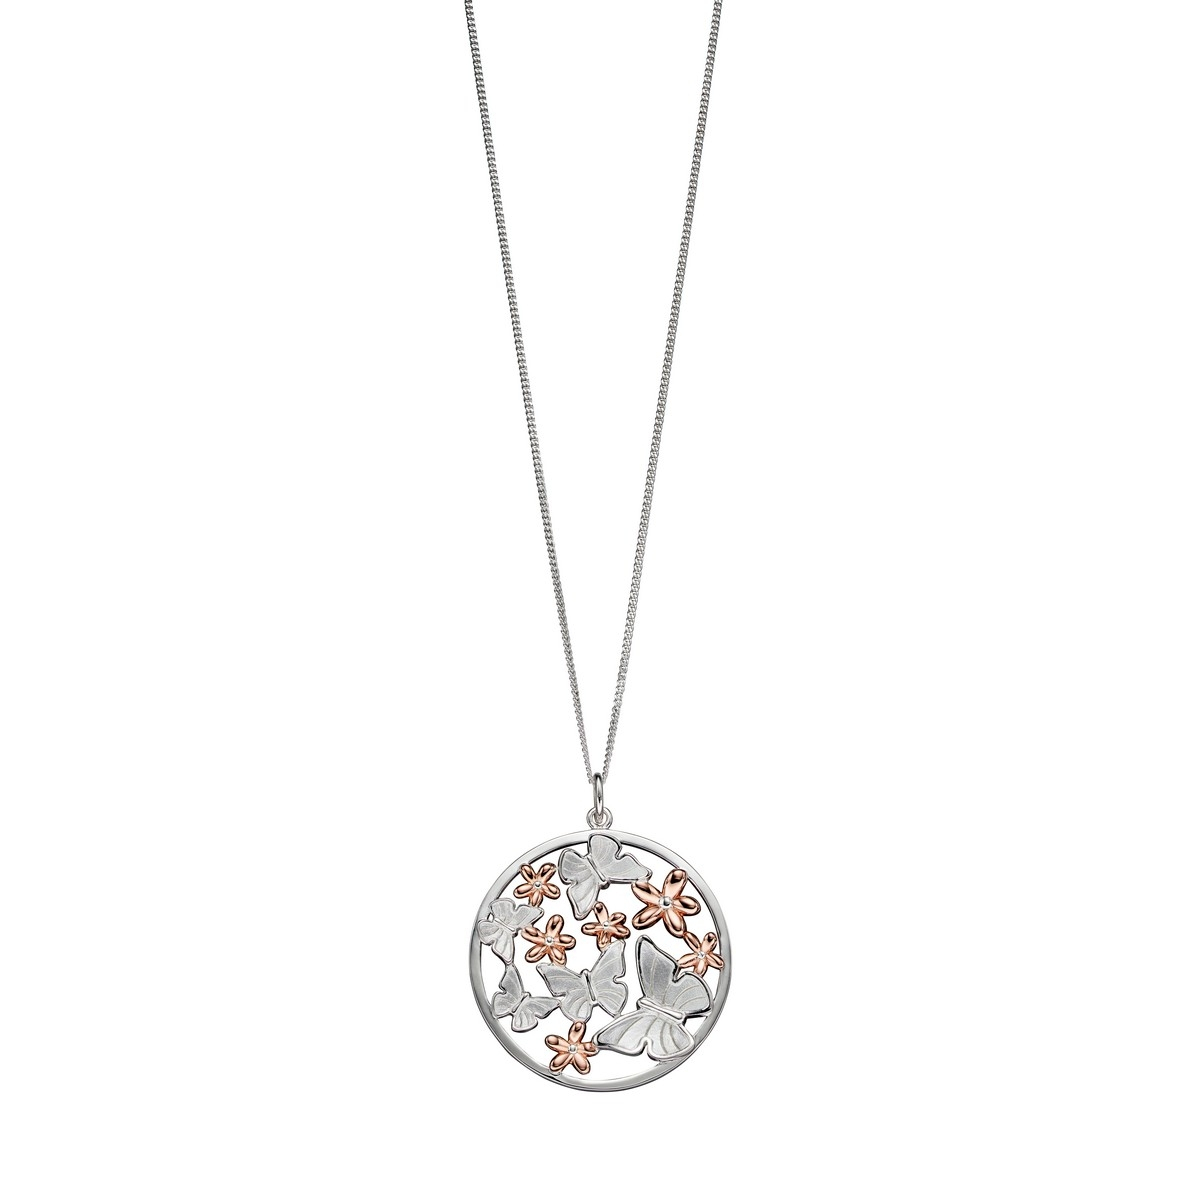 Details About Elements Silver Satin Finish Butterfly Rose Gold Flowers  Pendant P4701 With Current Classic Flower Locket Element Necklaces (Gallery 8 of 25)